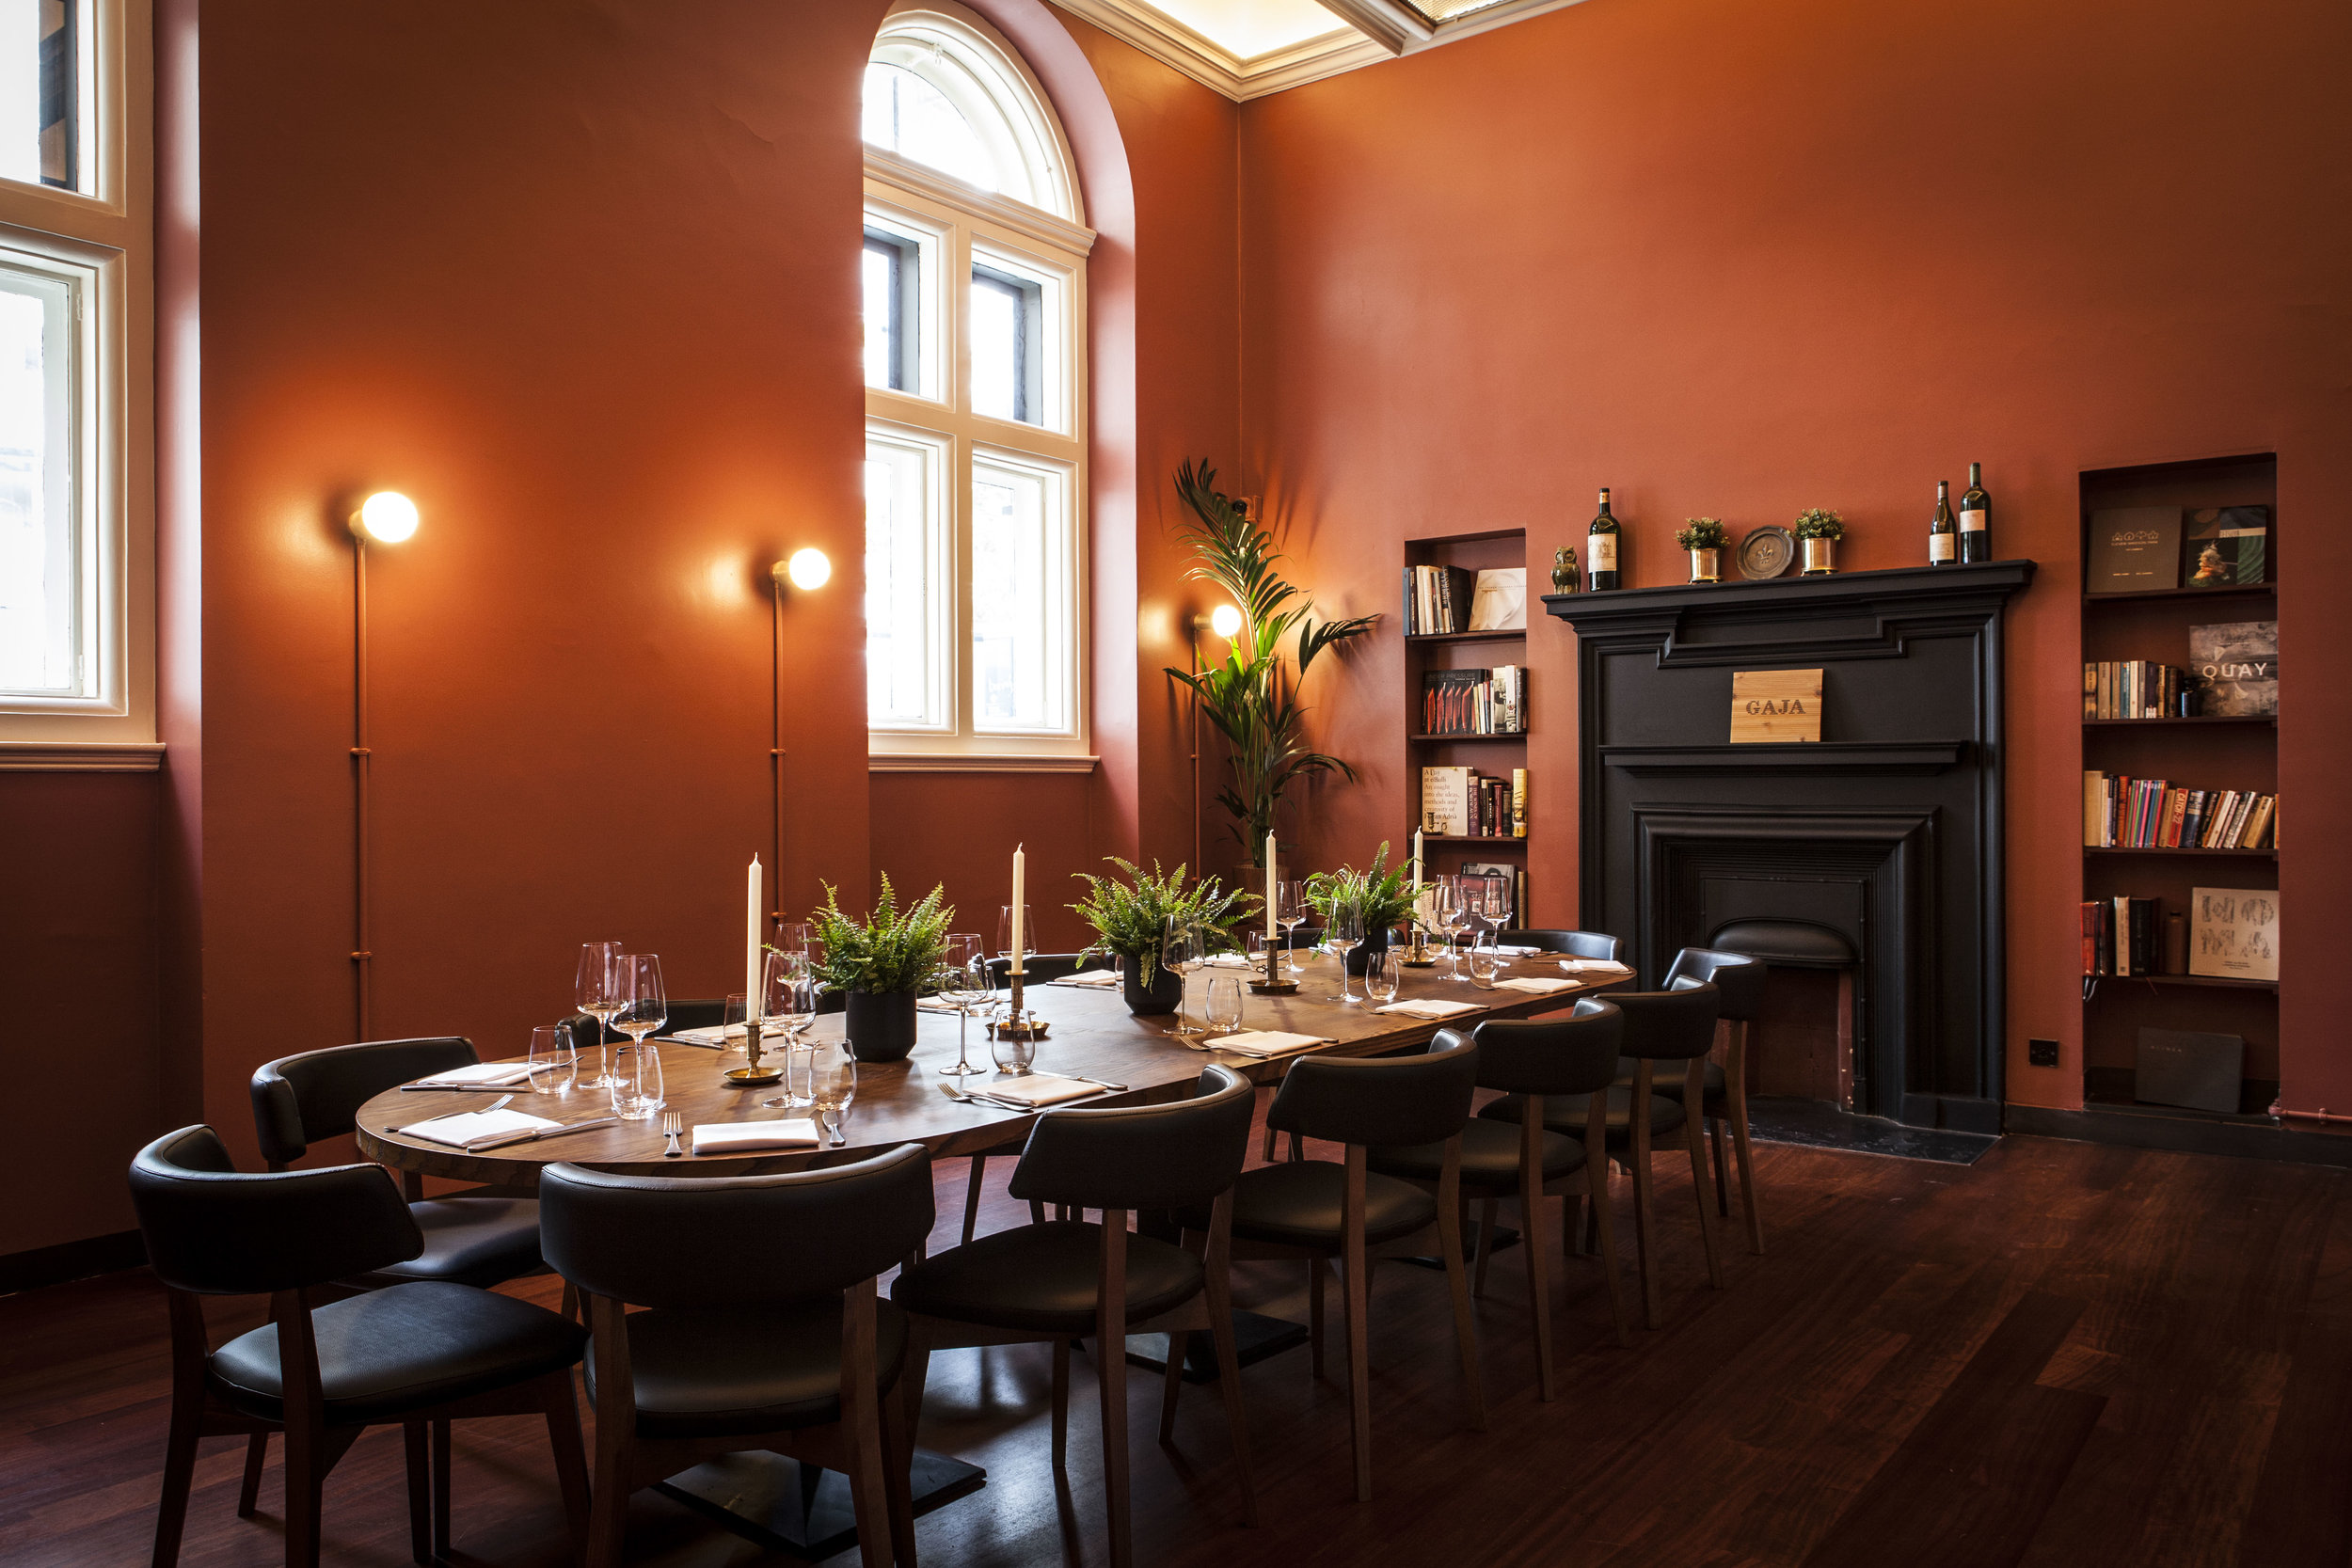 PRIVATE_DINING_ROOMS-1.jpg